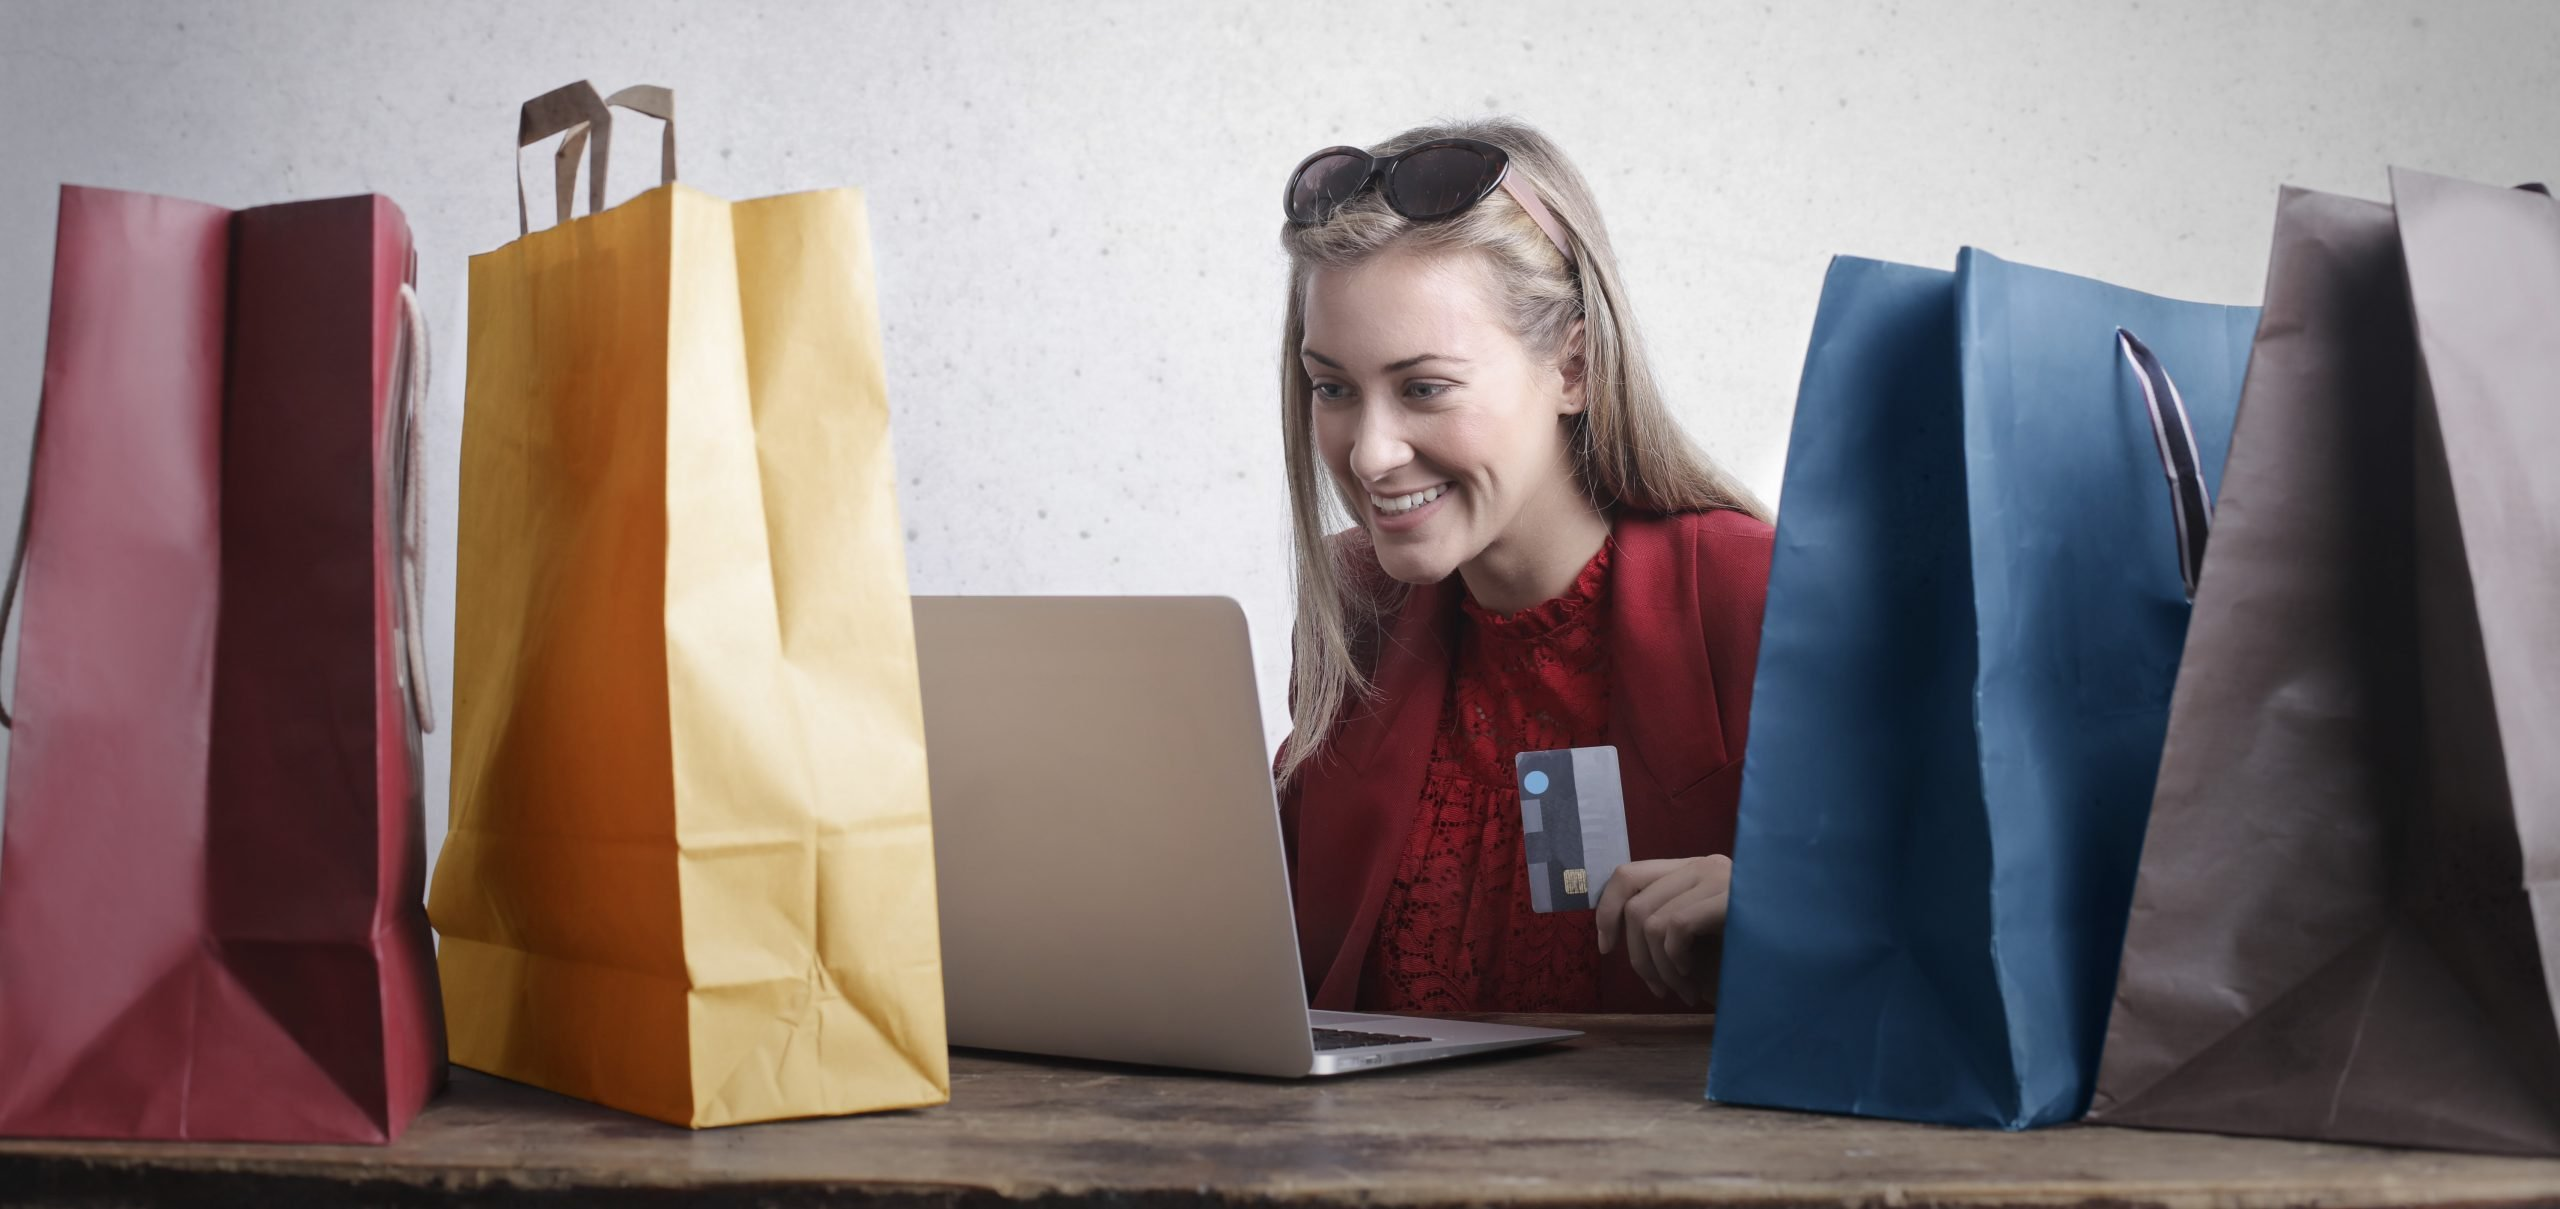 Moving your business online.